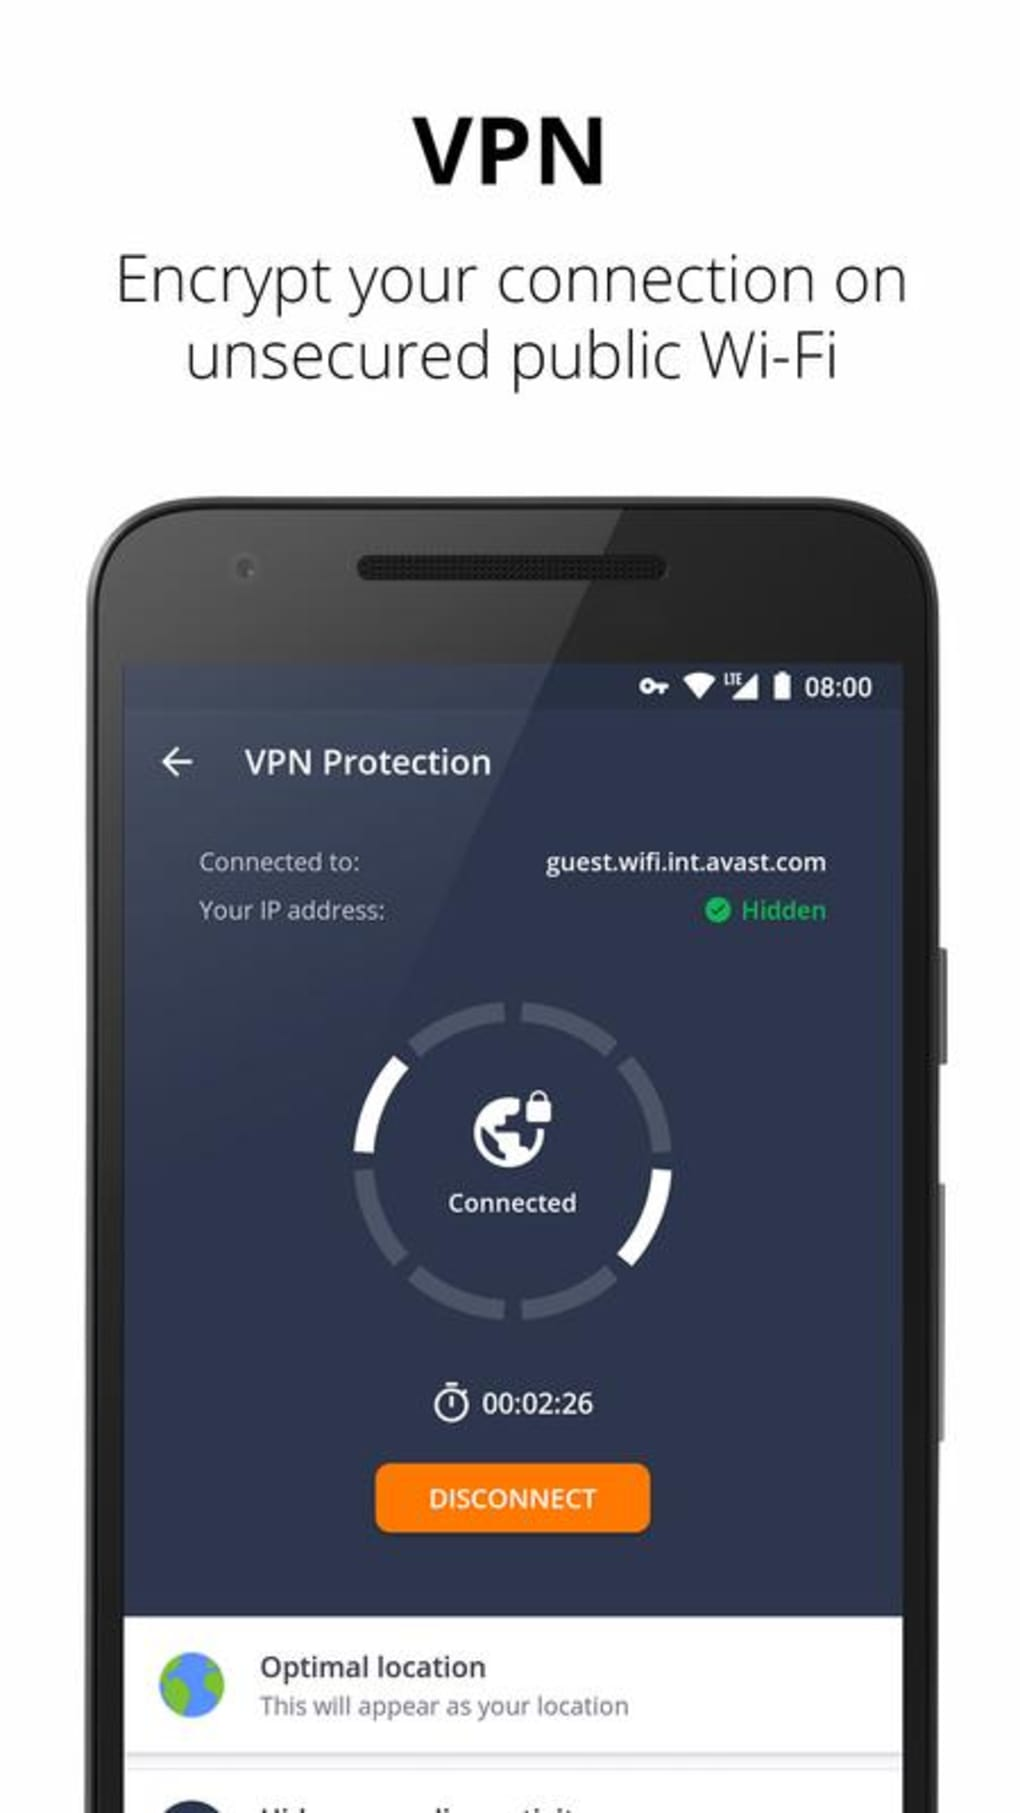 Avast Mobile Security & Antivirus for Android - Download